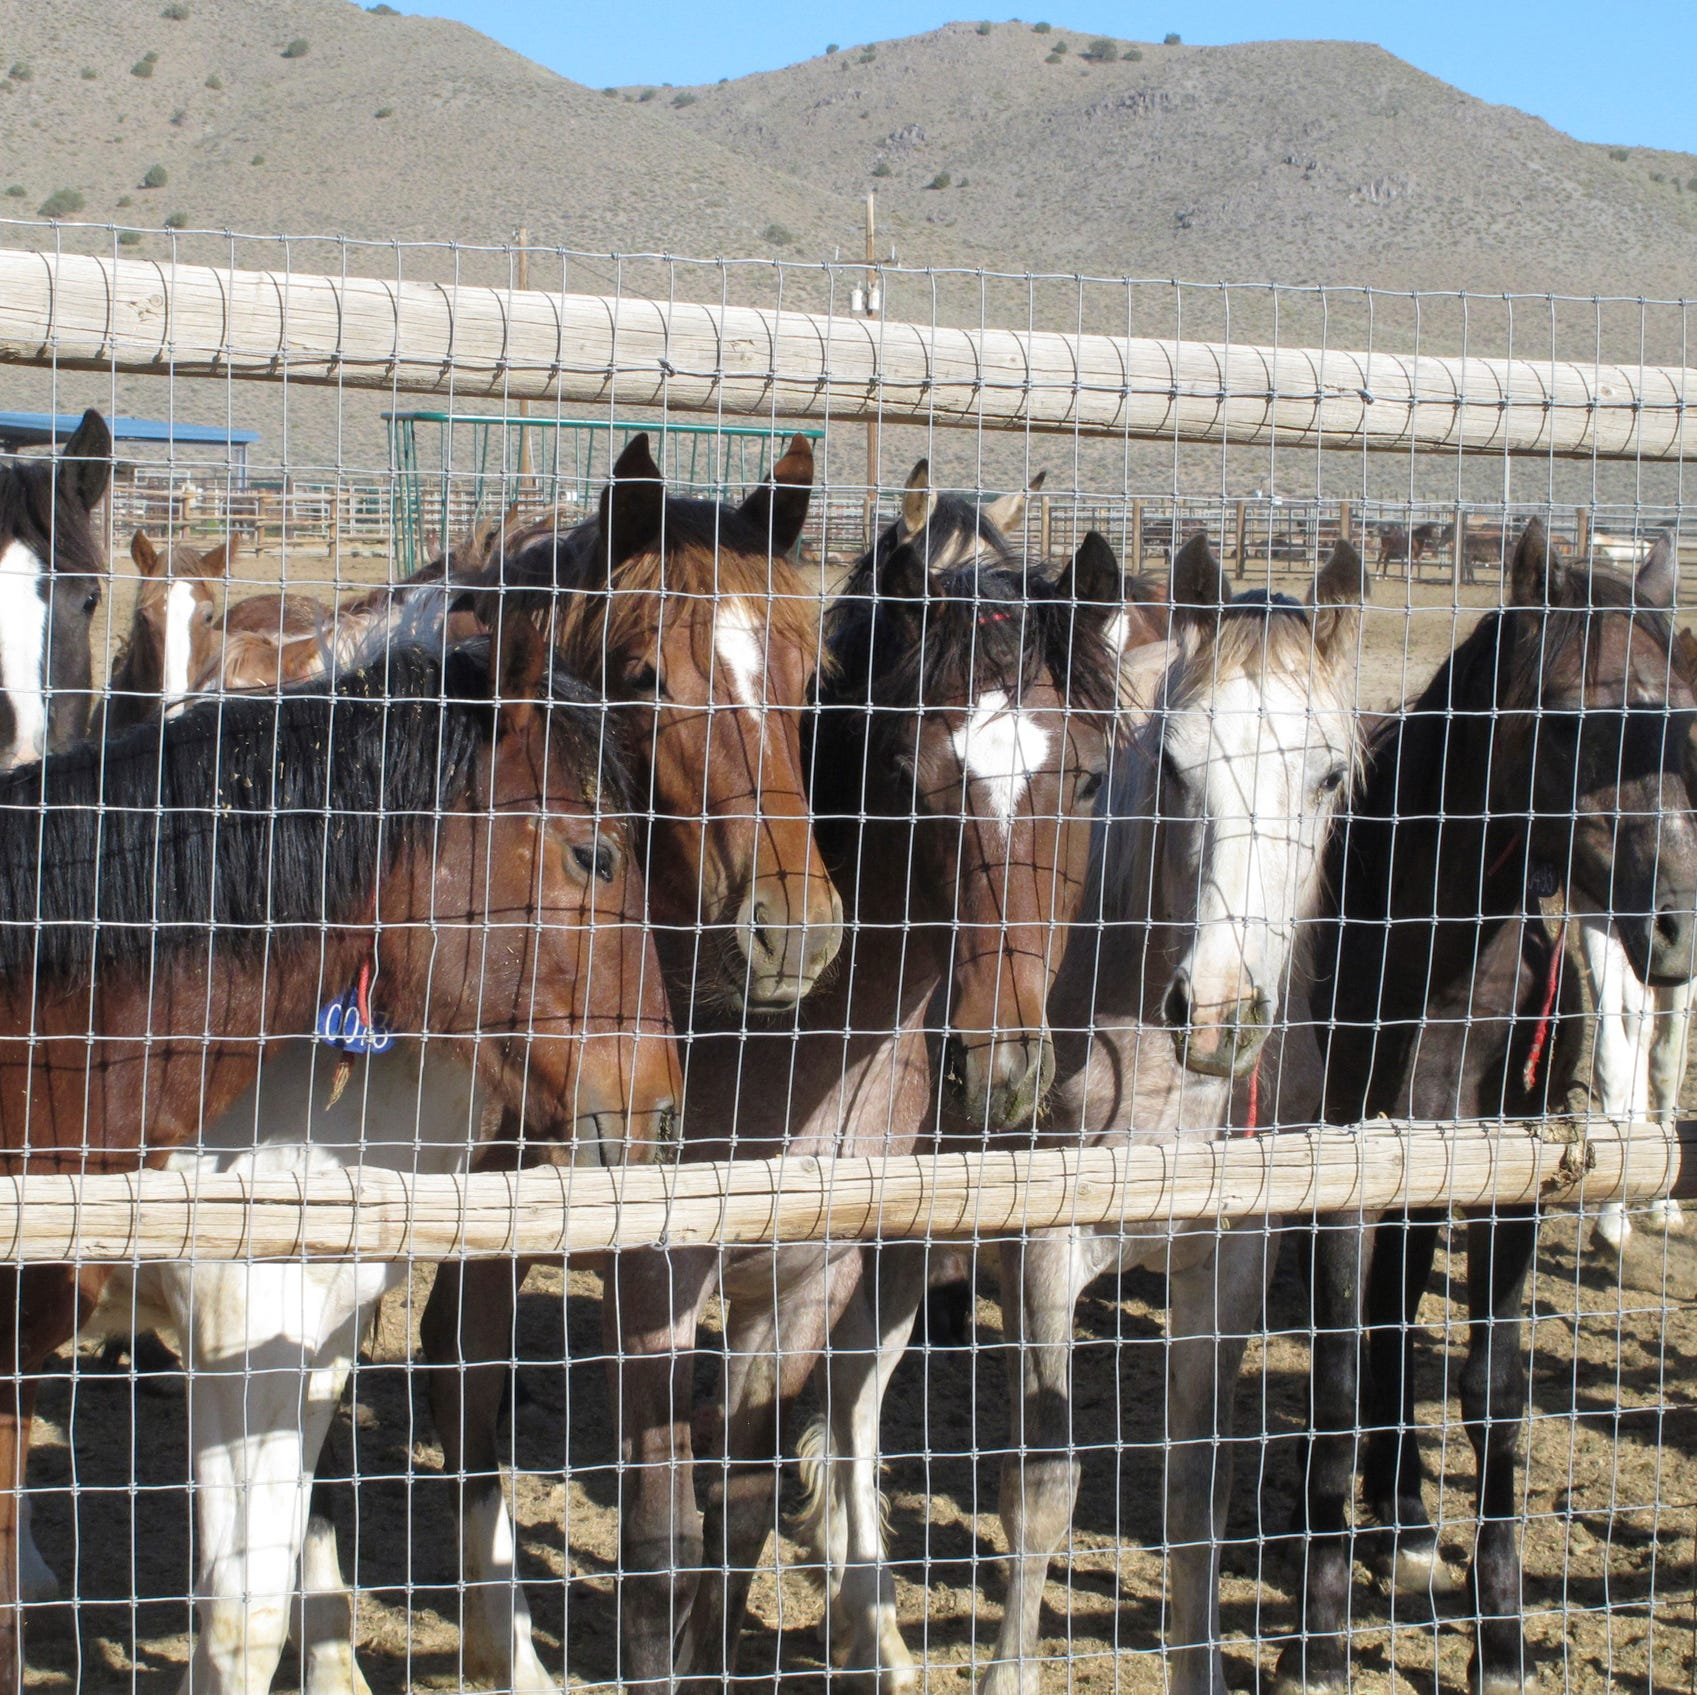 U.S. Forest Service built pen for possible horse slaughter